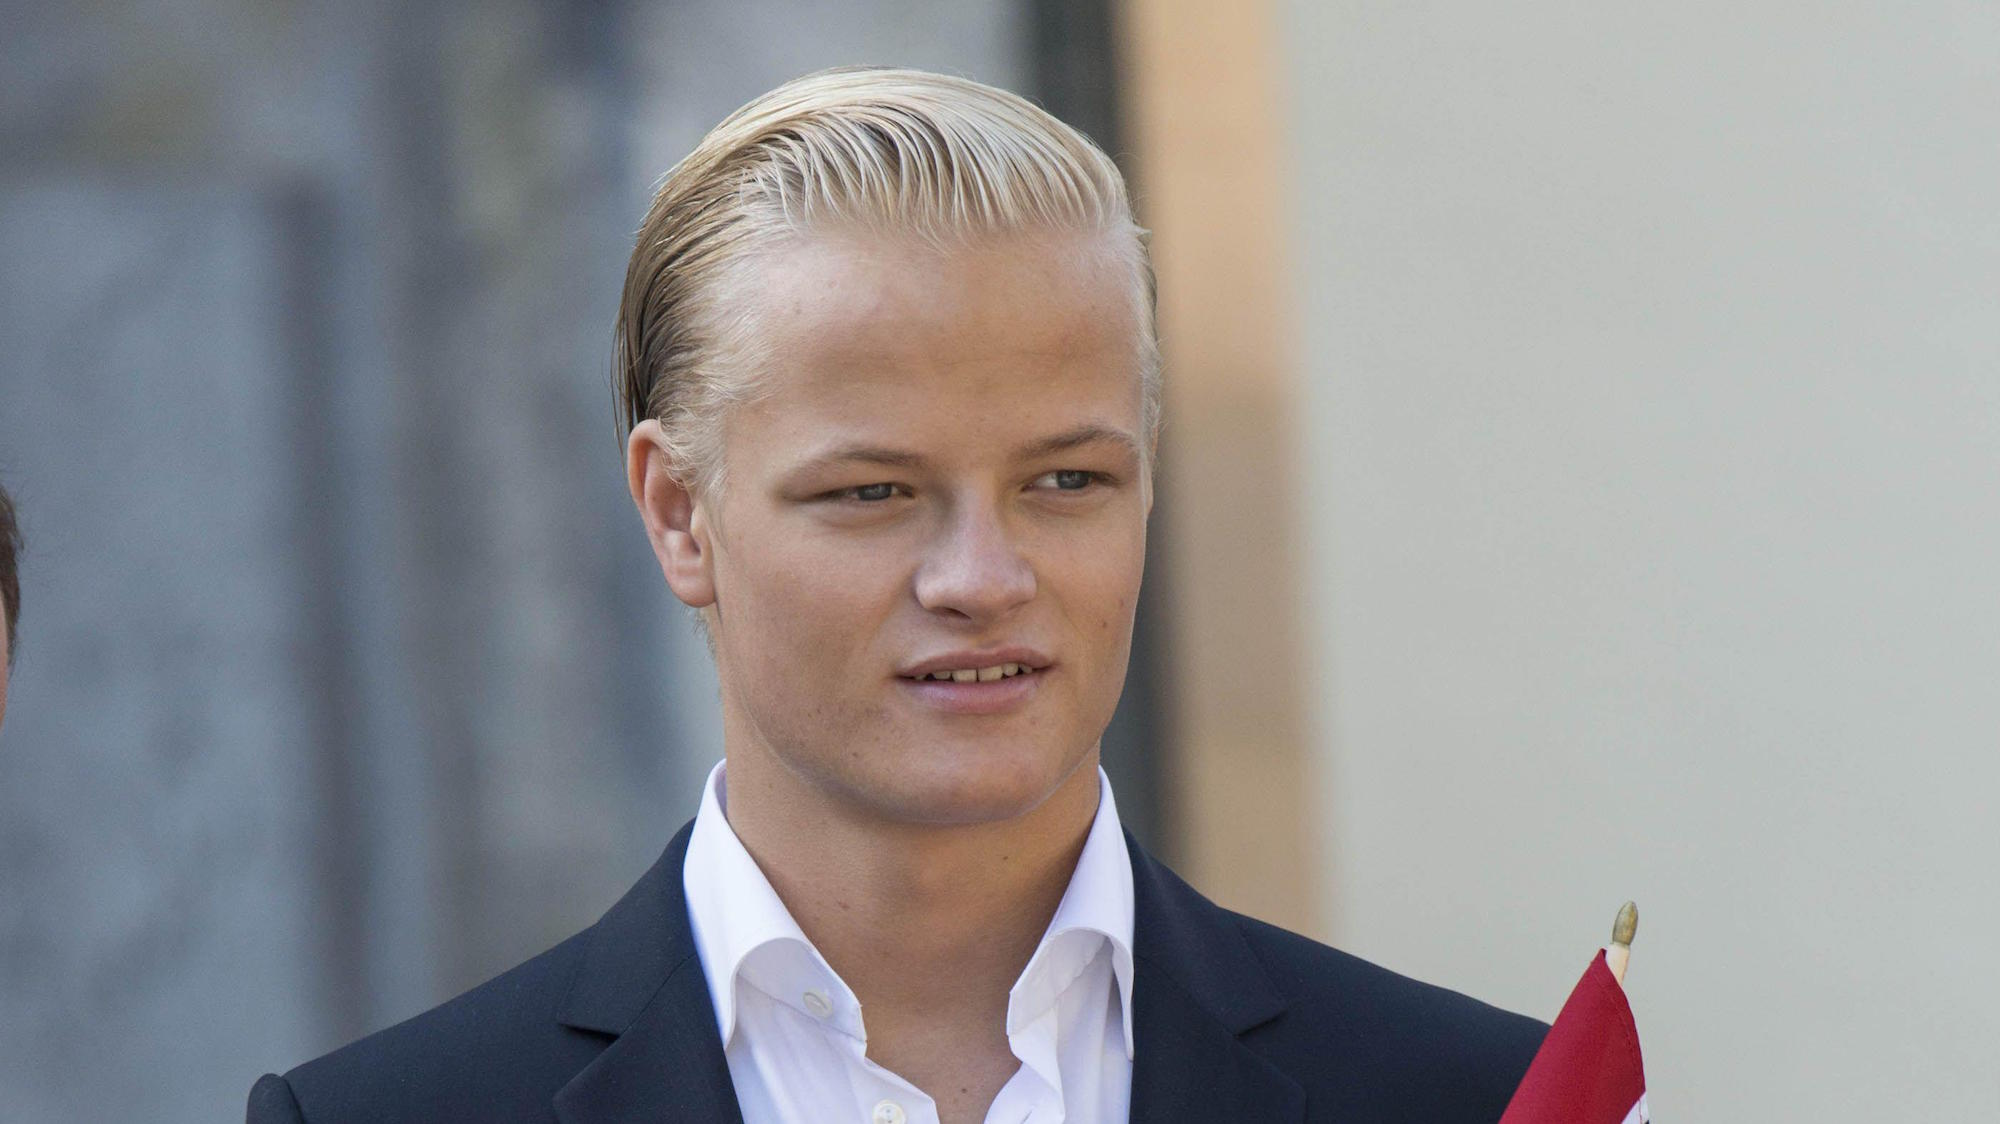 Norways Most Eligible Royal Marius Borg Høiby Is Newly Single